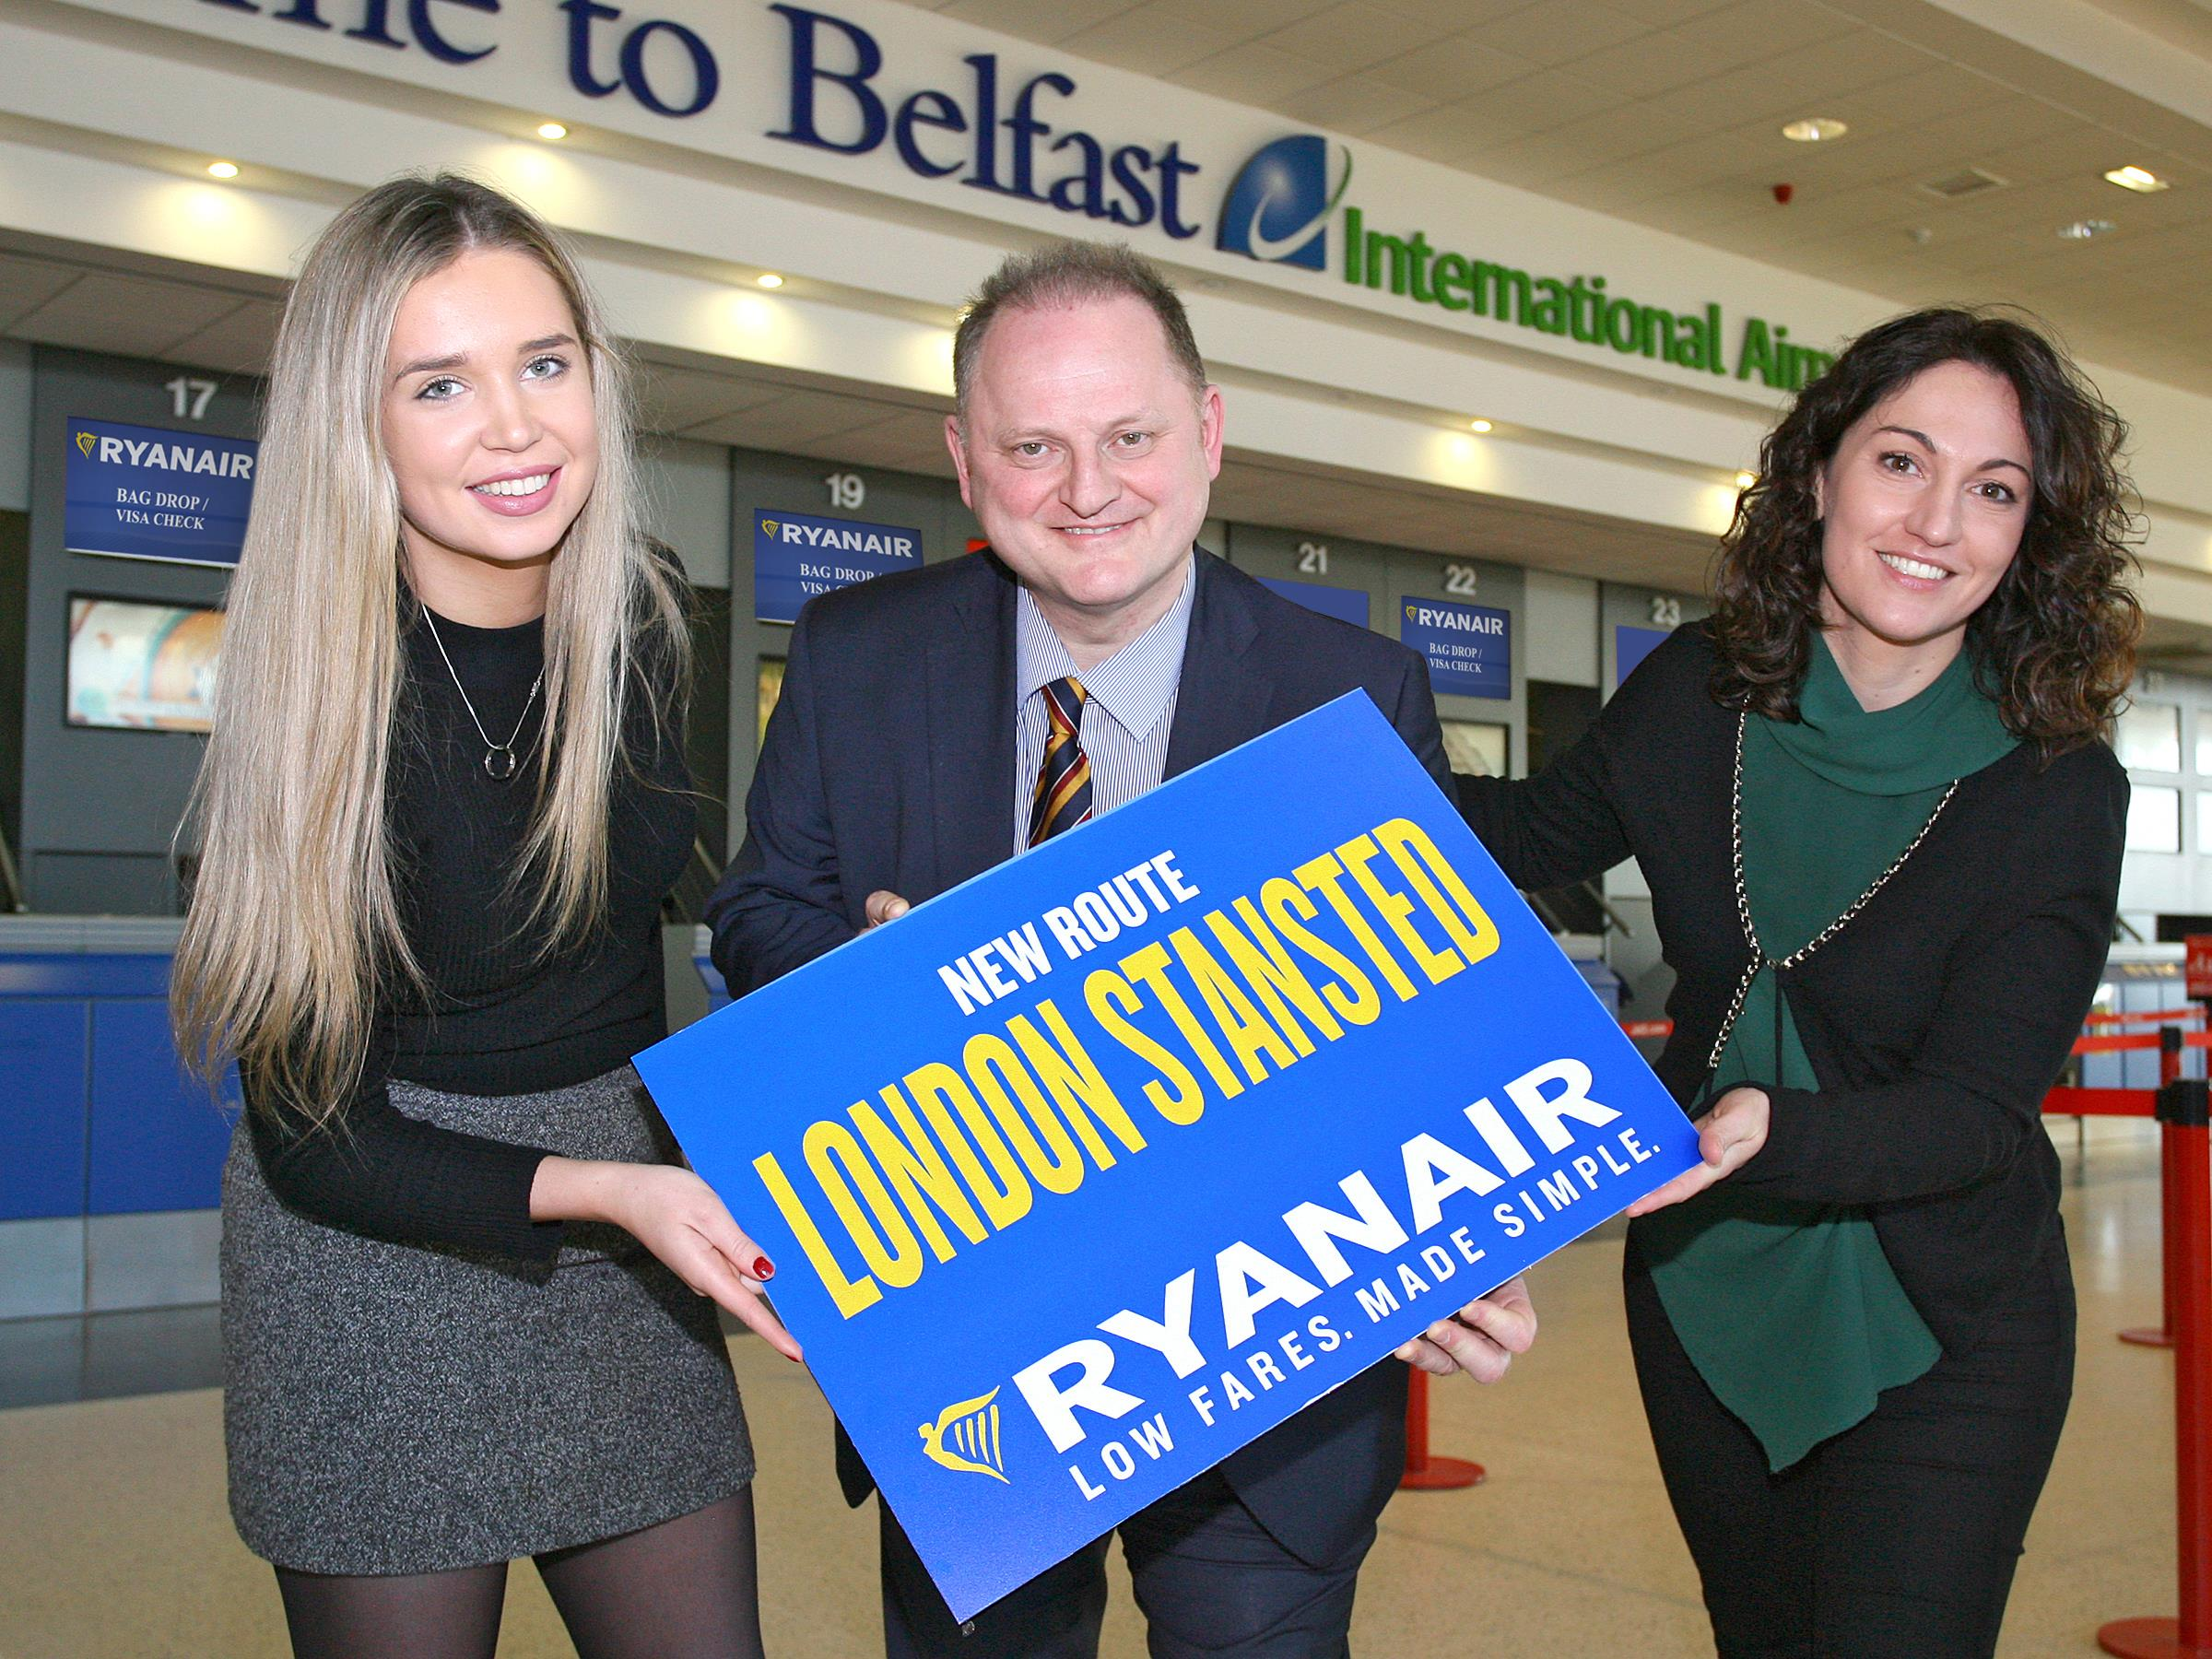 RYANAIR'S FIRST BELFAST FLIGHT TO LONDON STANSTED TAKES OFF